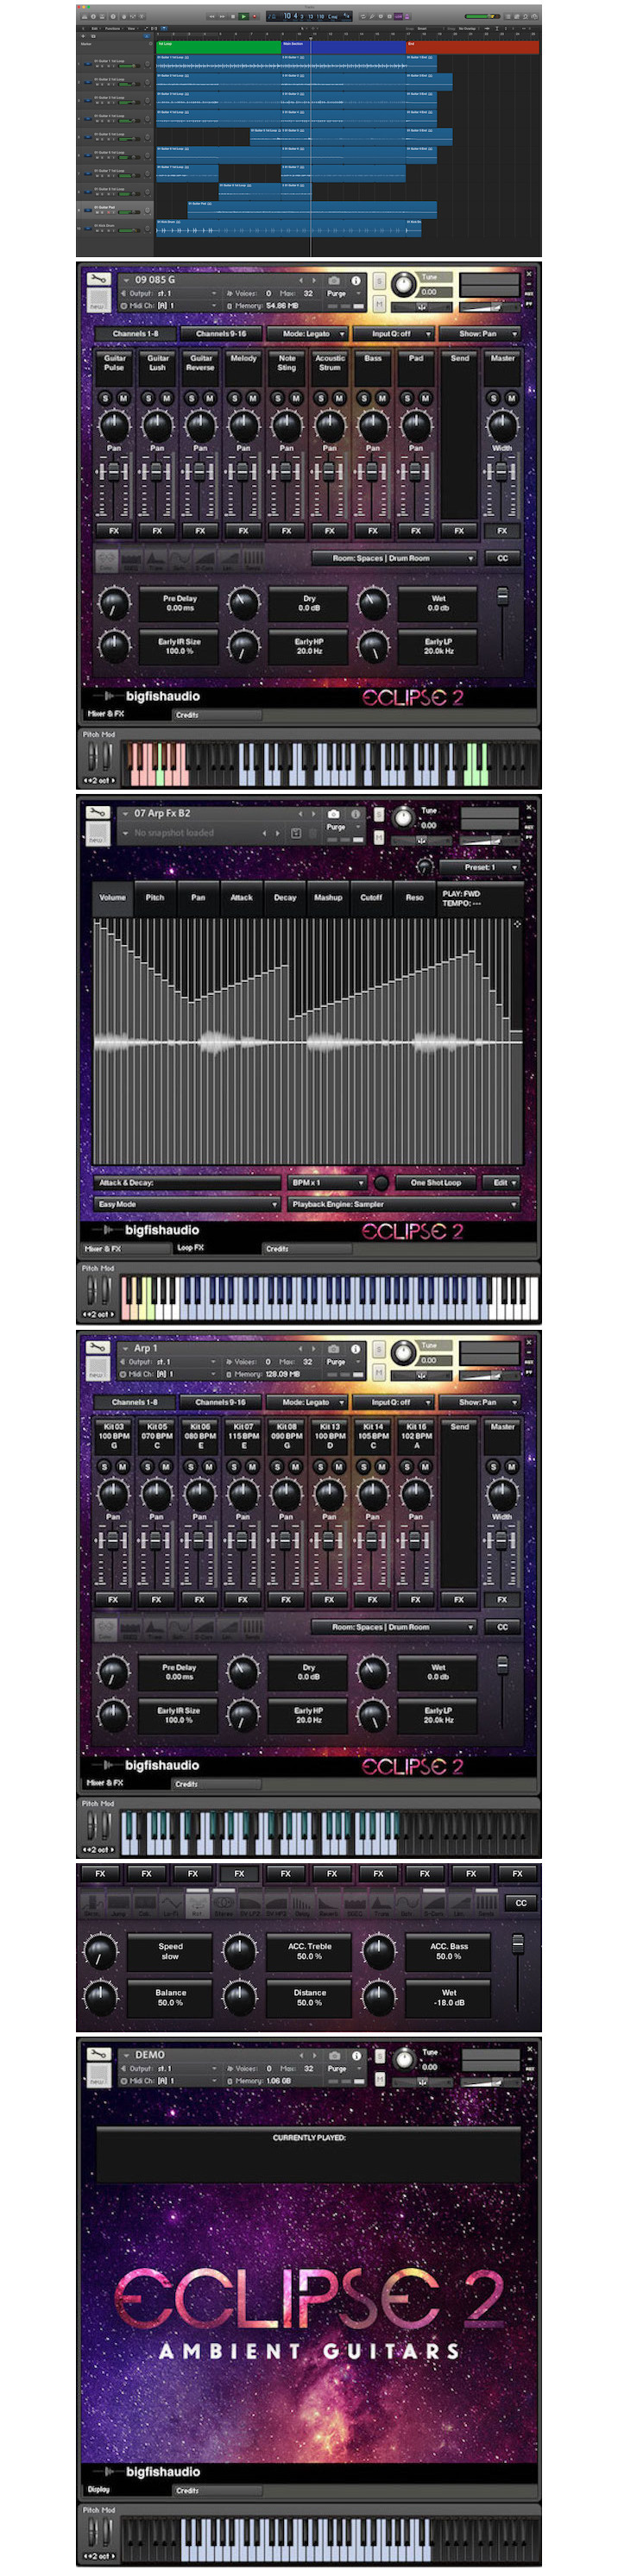 big_fish_audio_eclipse_2:_ambient_guitars_multiformat_pc_mac